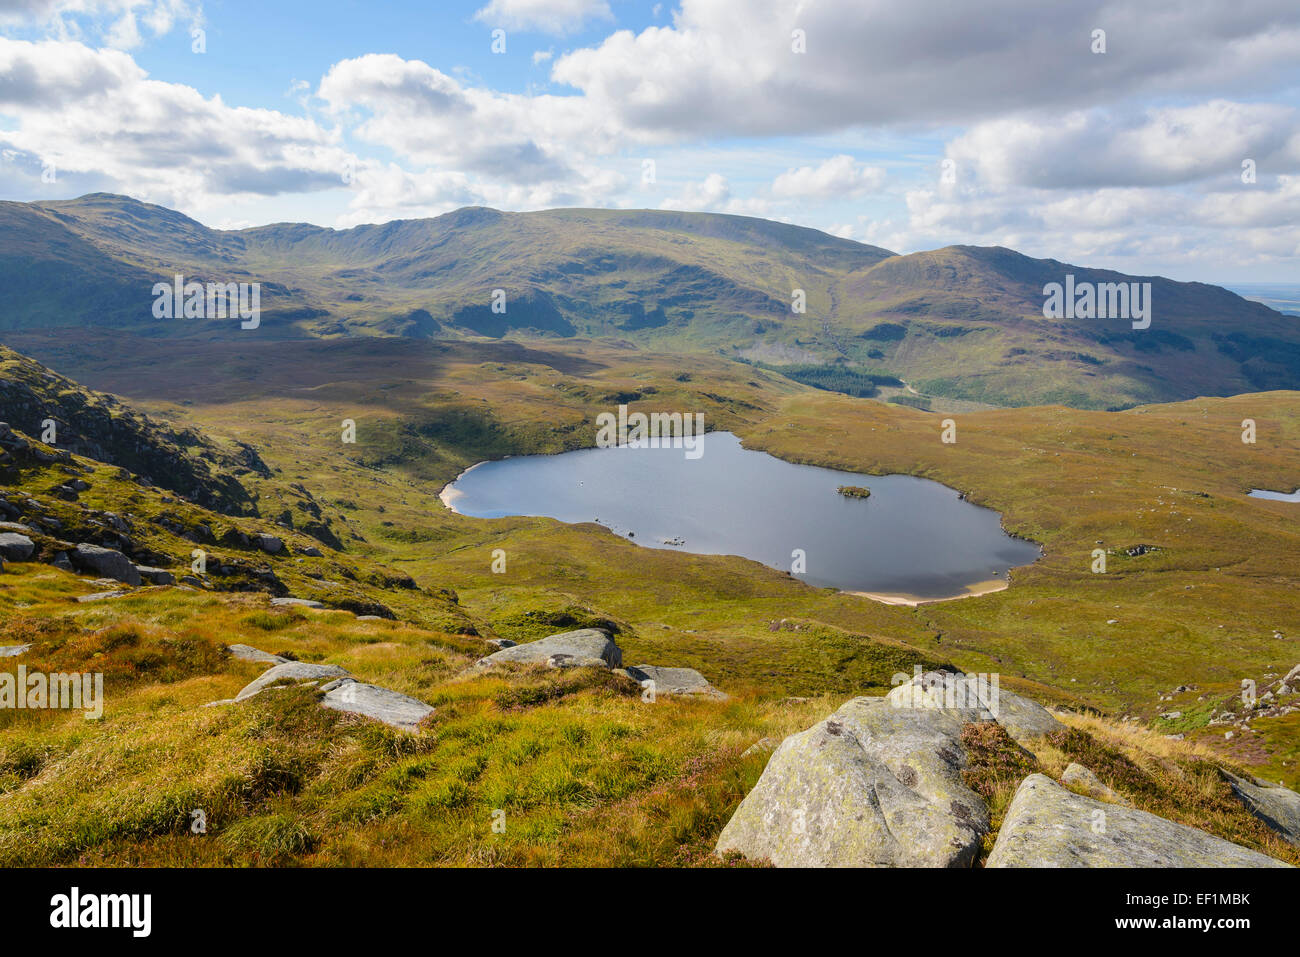 Round Loch of Glenhead from Rig of the Jarkness, Galloway Hills, Dumfries & Galloway, Scotland - Stock Image